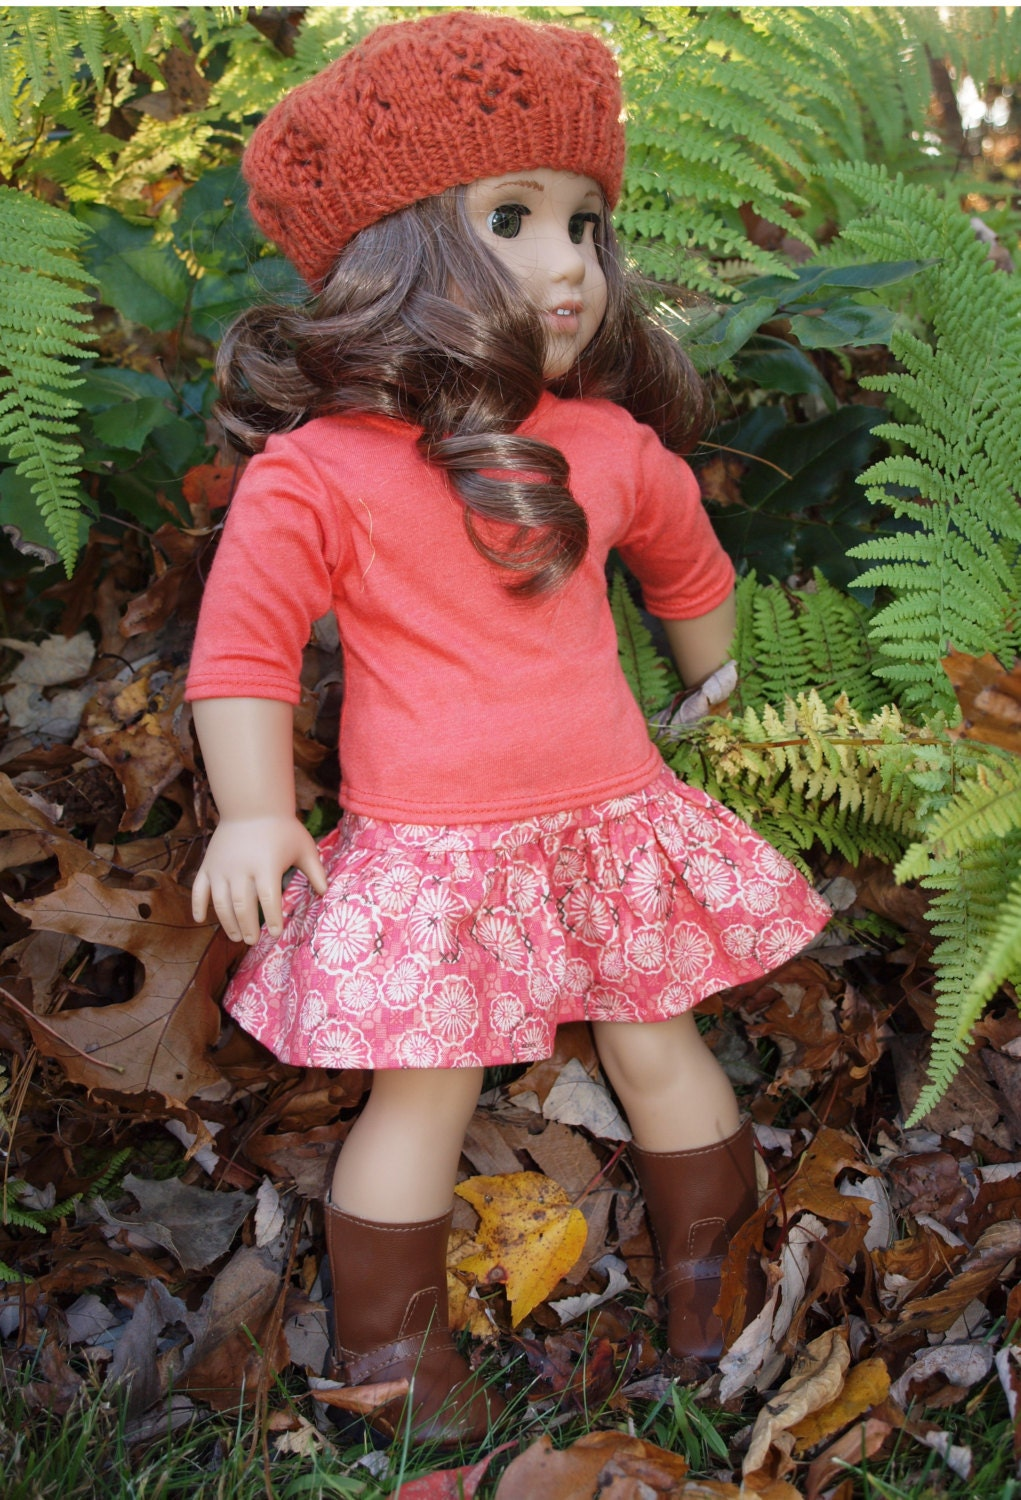 18 inch dolls clothes american girl doll clothes skirt outfit for Garden tools for 18 inch doll